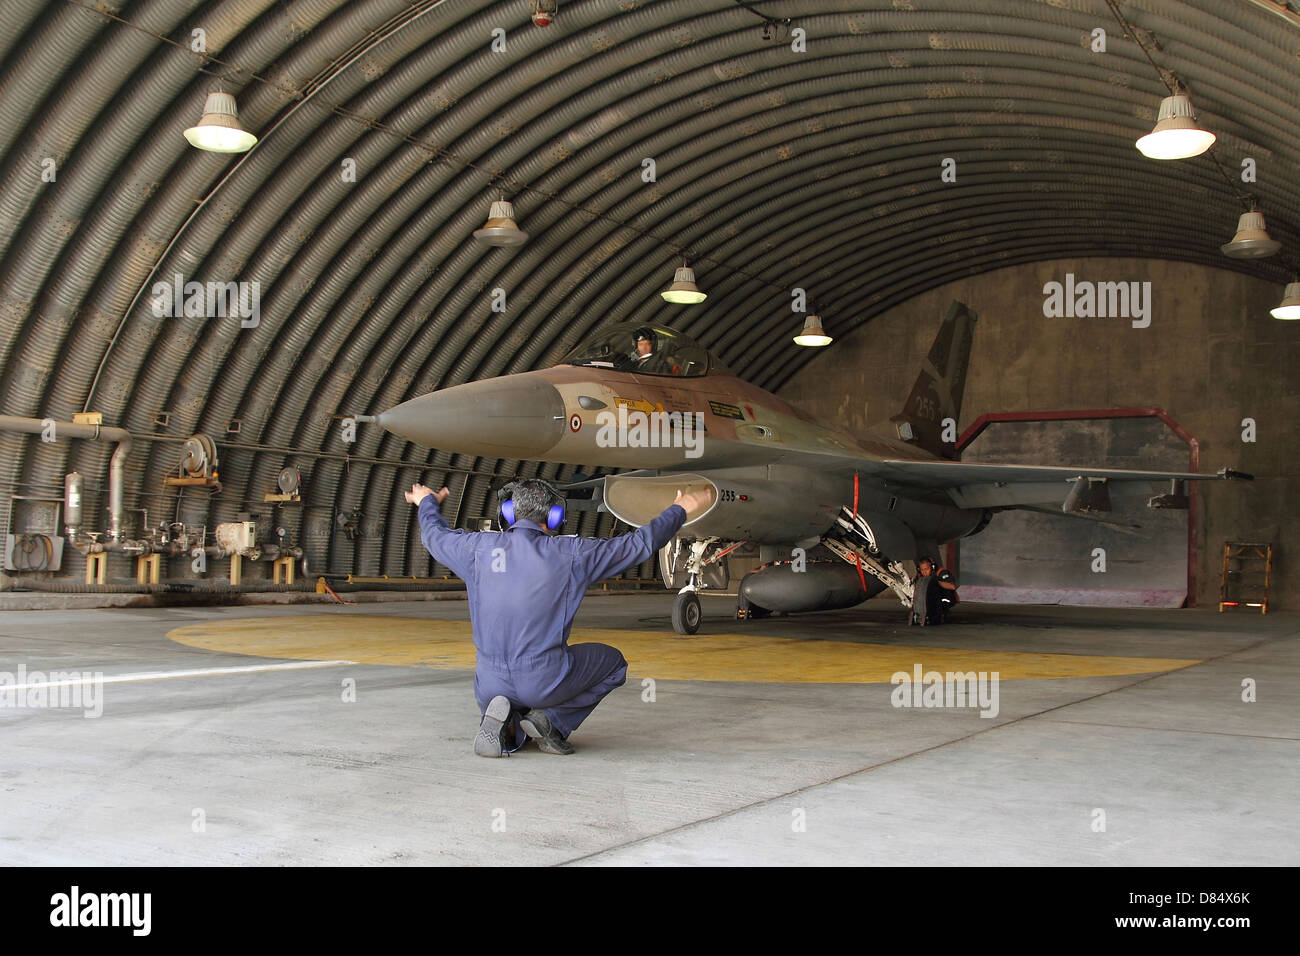 An F-16A Netz of the Israeli Air Force ready to depart its hardened shelter at Nevatim Air Force Base, Israel. - Stock Image